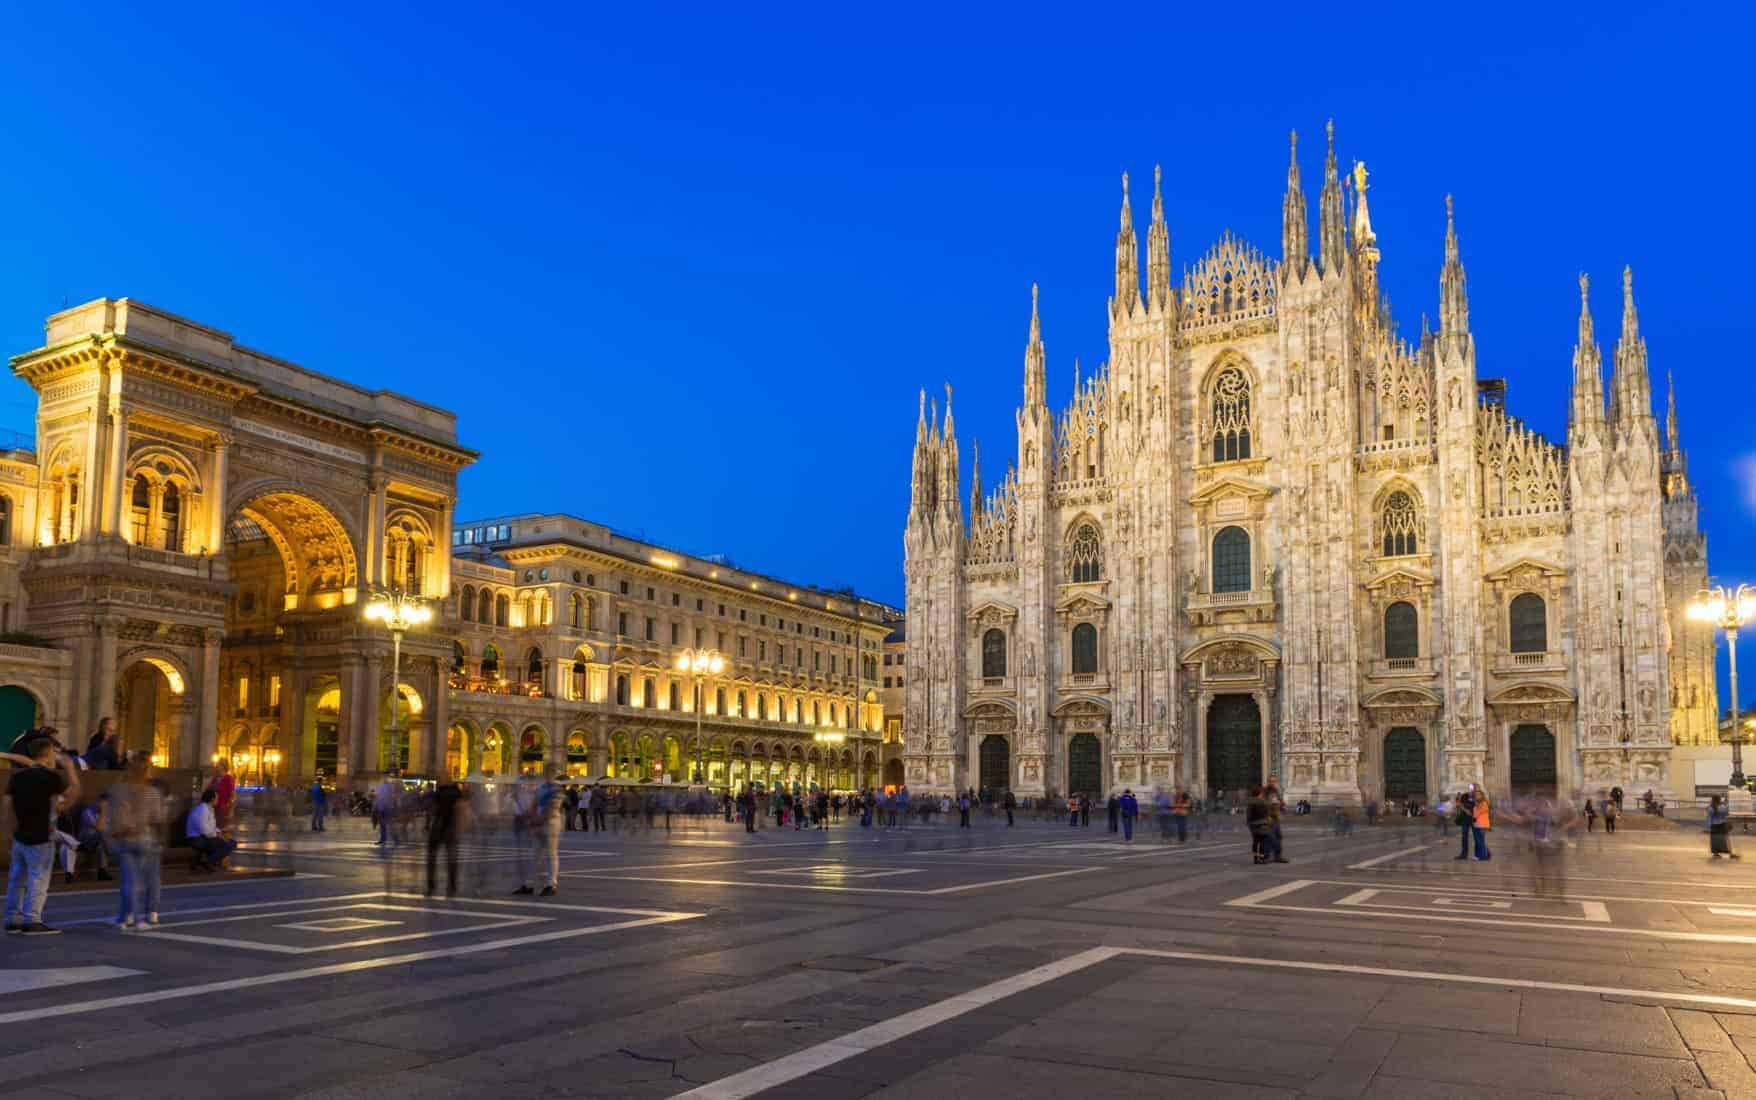 Night view of Milan Cathedral (Duomo di Milano), Vittorio Emanuele II Gallery and piazza del Duomo in Milan